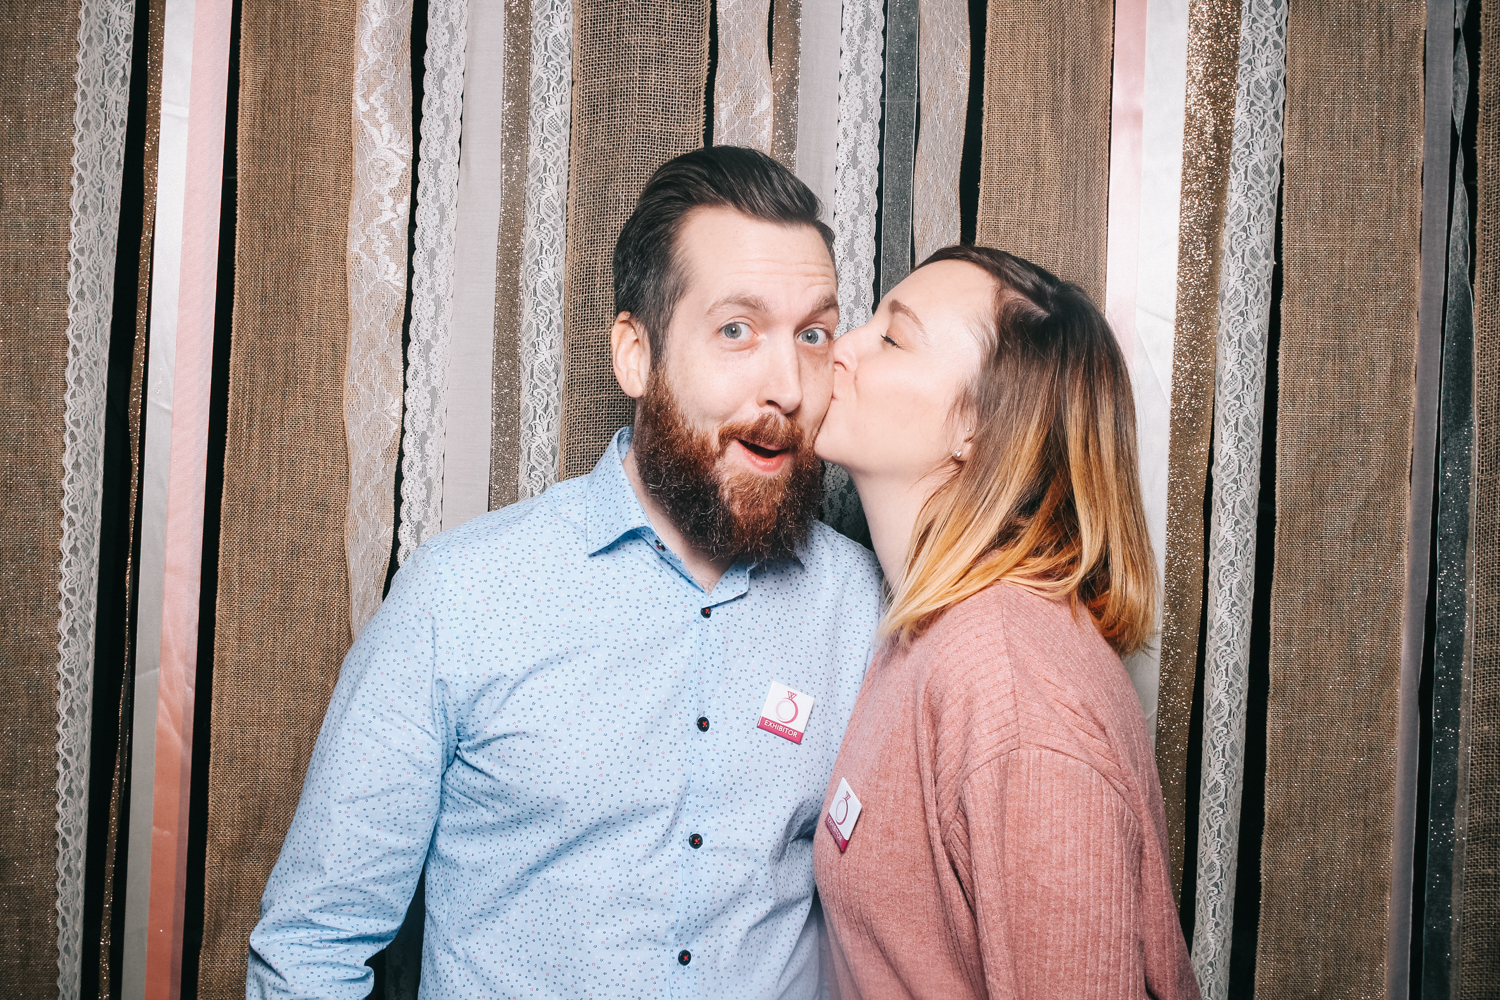 Wedding experience photo booth